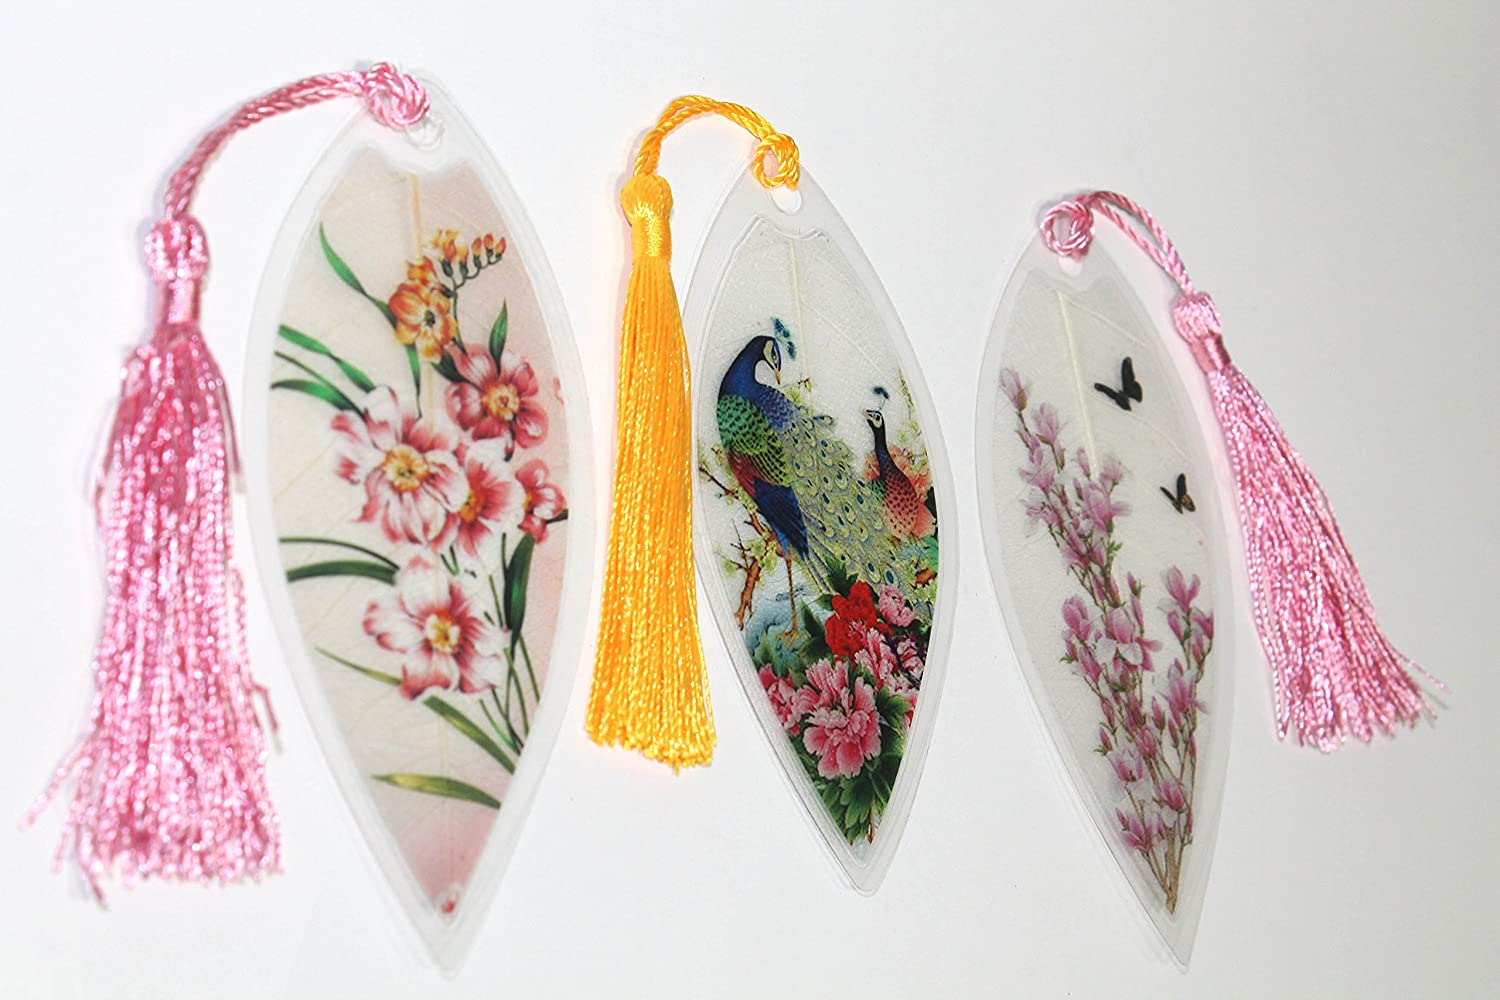 Lucore Leaf Bookmarks Peacocks And Pink Flowers Asian Someday Floral Embroidery Top Painting Lucky Charm Ornament Hanging Wall Decor Art Decoration 3 Pcs